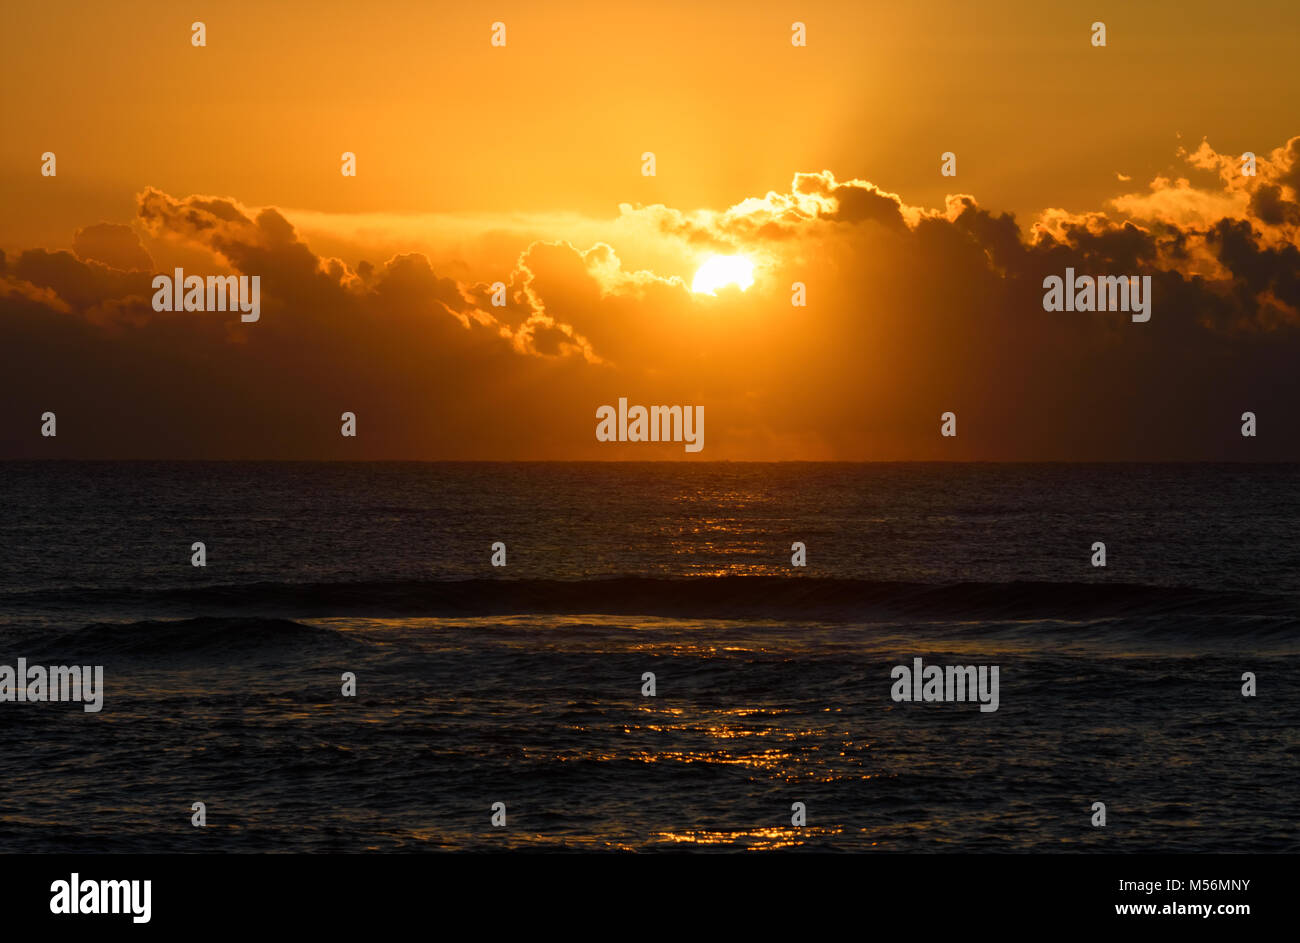 Golden sunrise or sunset over the sea. Sunlight reflects from water waves. - Stock Image